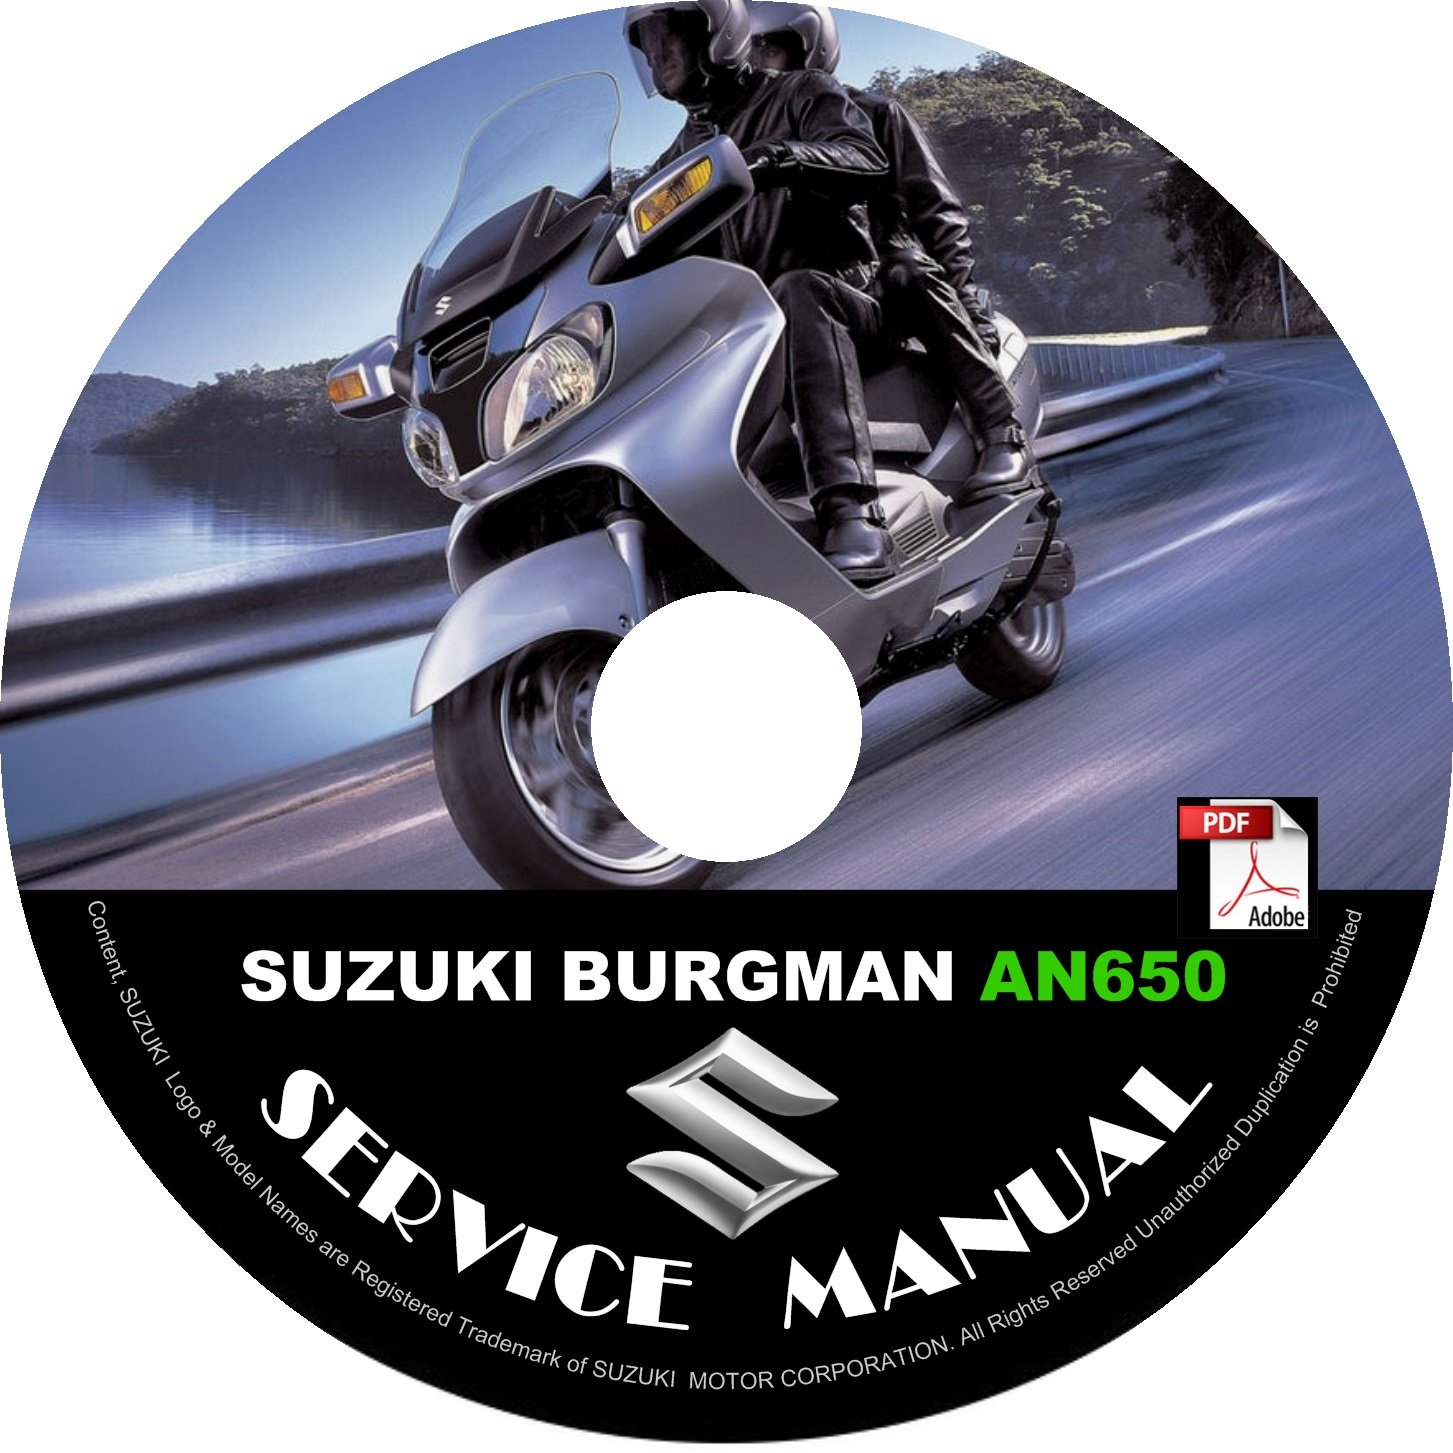 2003 Suzuki Burgman 650 AN650 Factory Service Repair Shop Manual on CD Fix Rebuilt Workshop Guide